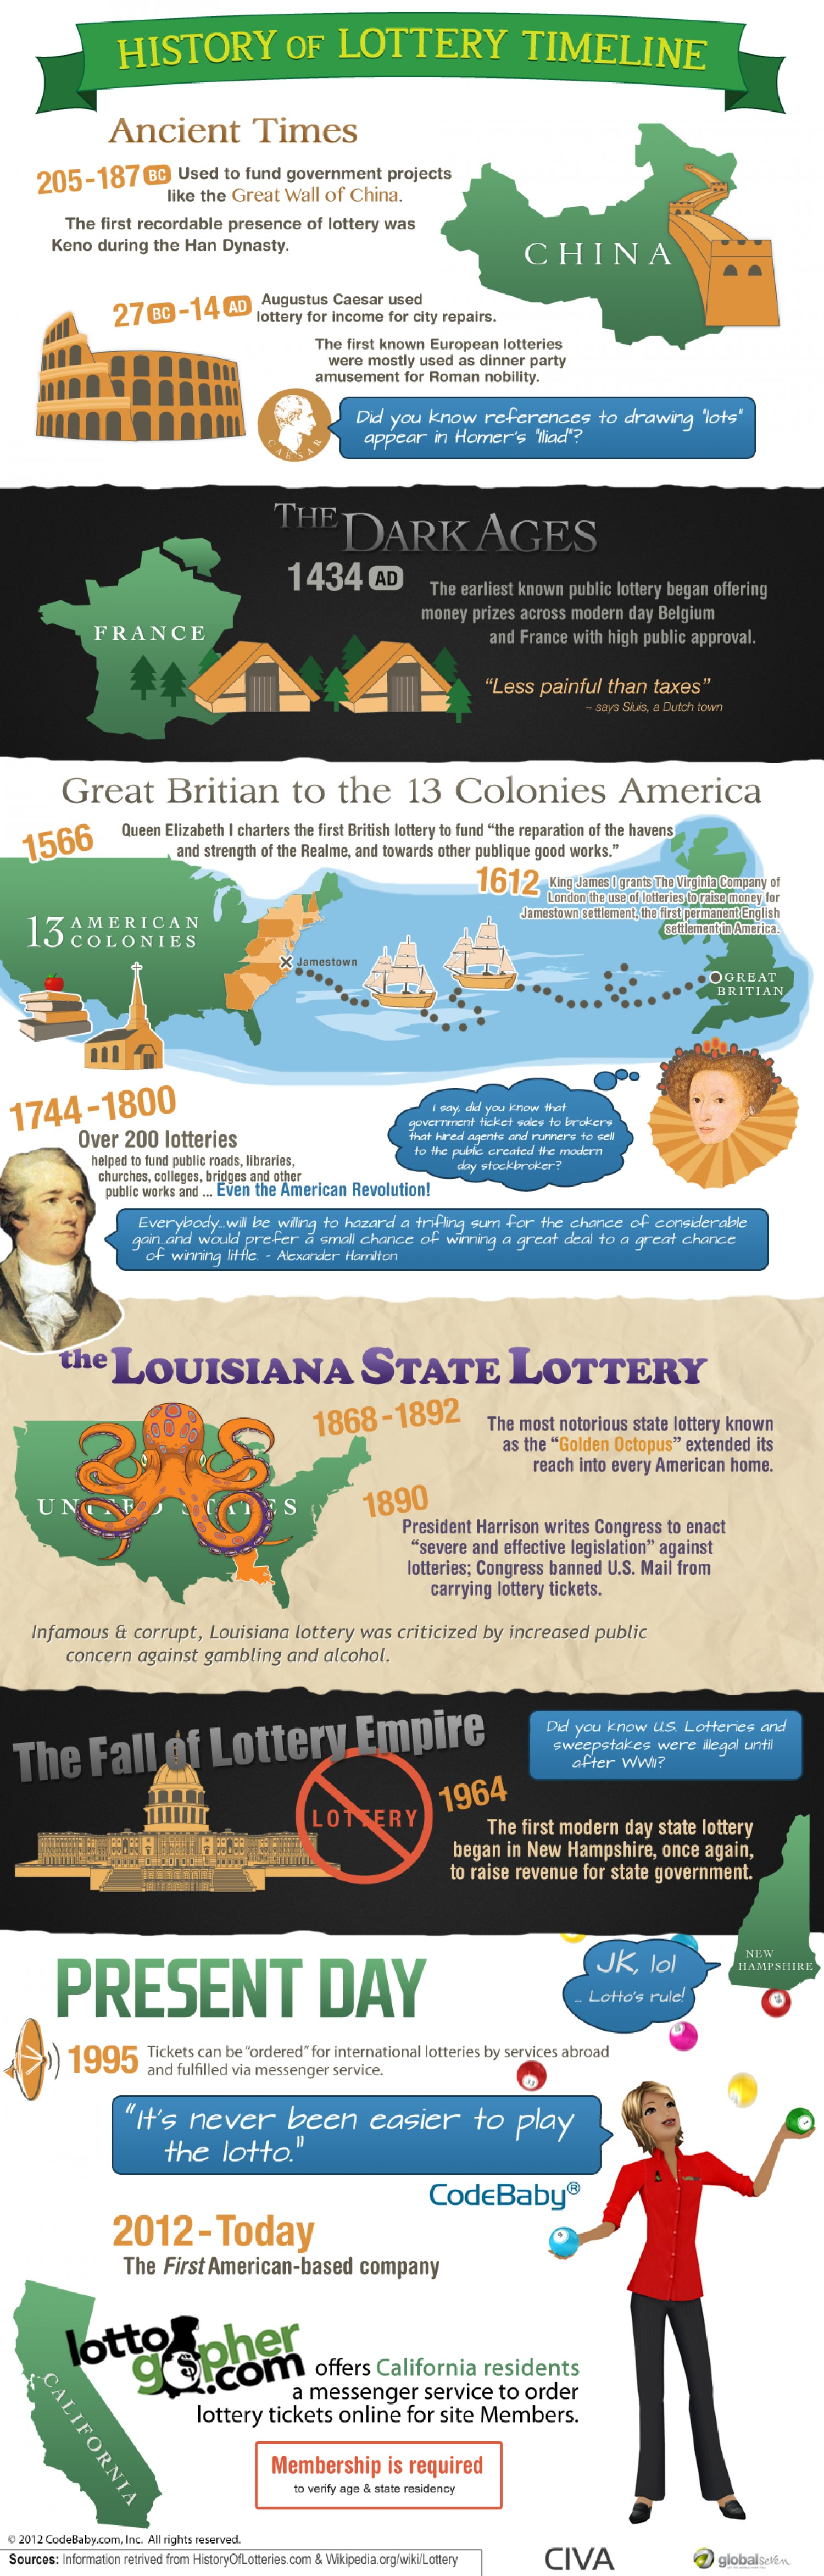 History of Lottery Timeline